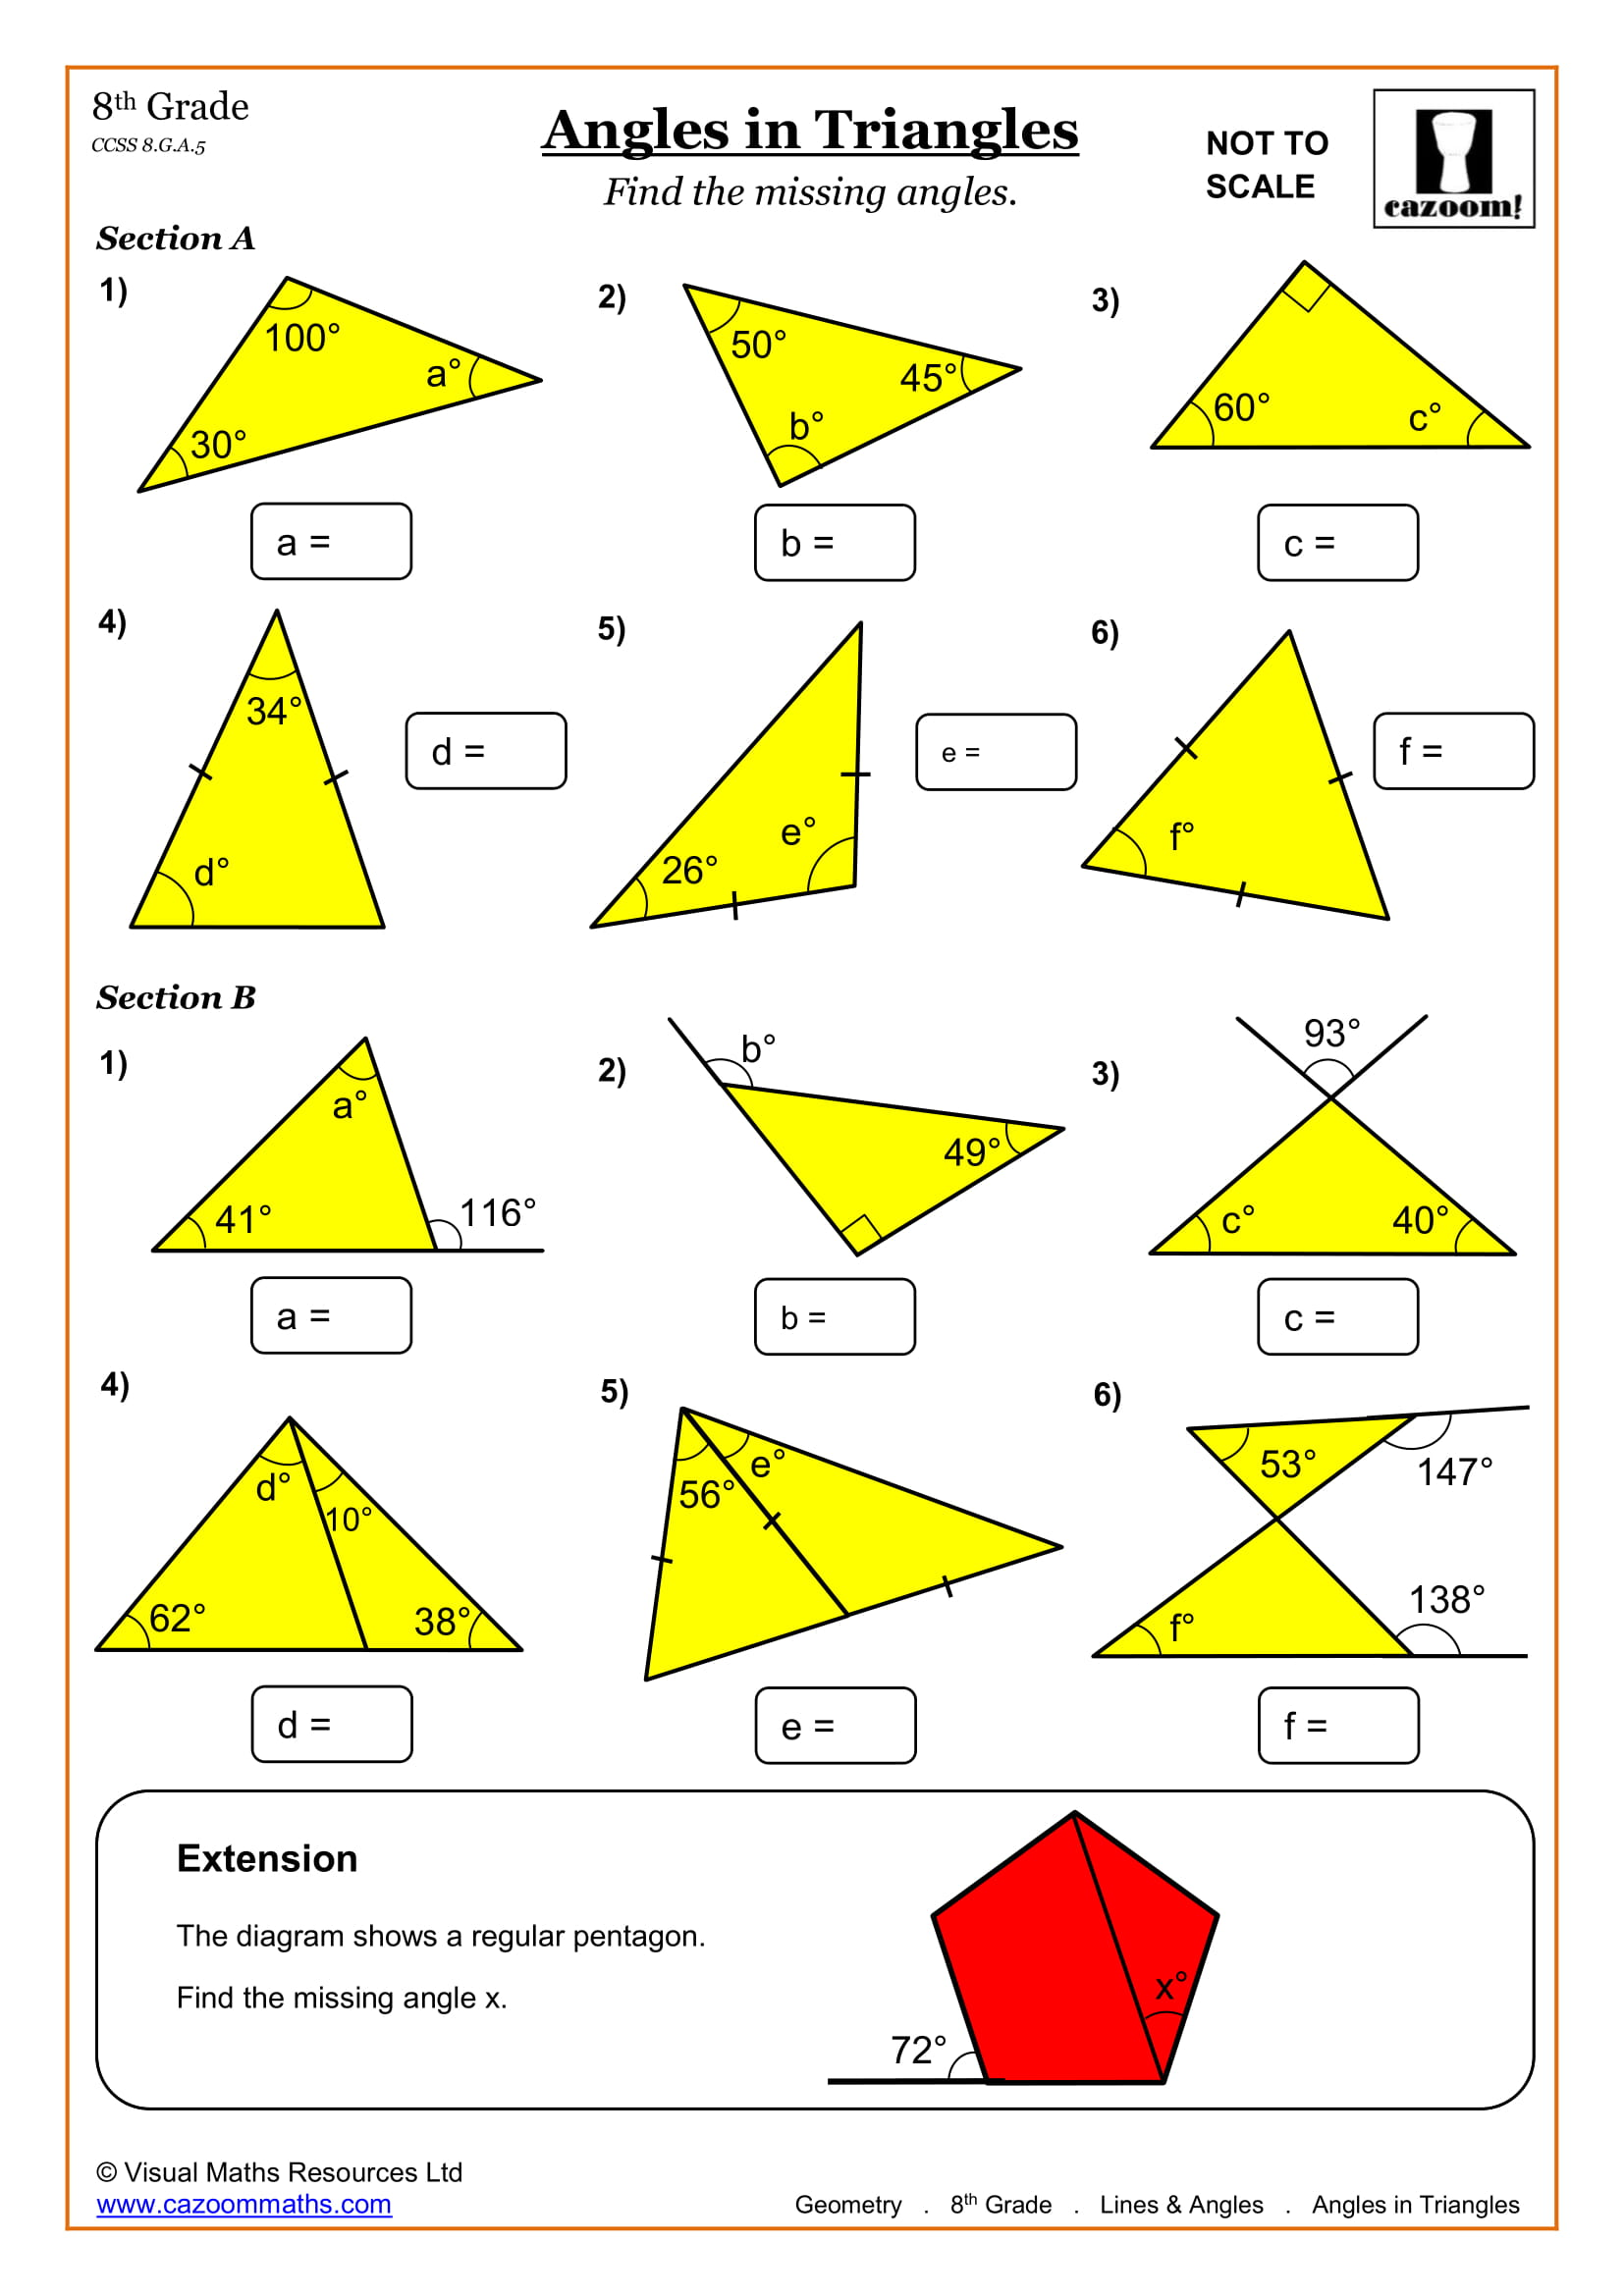 Geometry.Lines and Angles.Angles in Triangles.US 1 - 8th Grade Math Worksheets